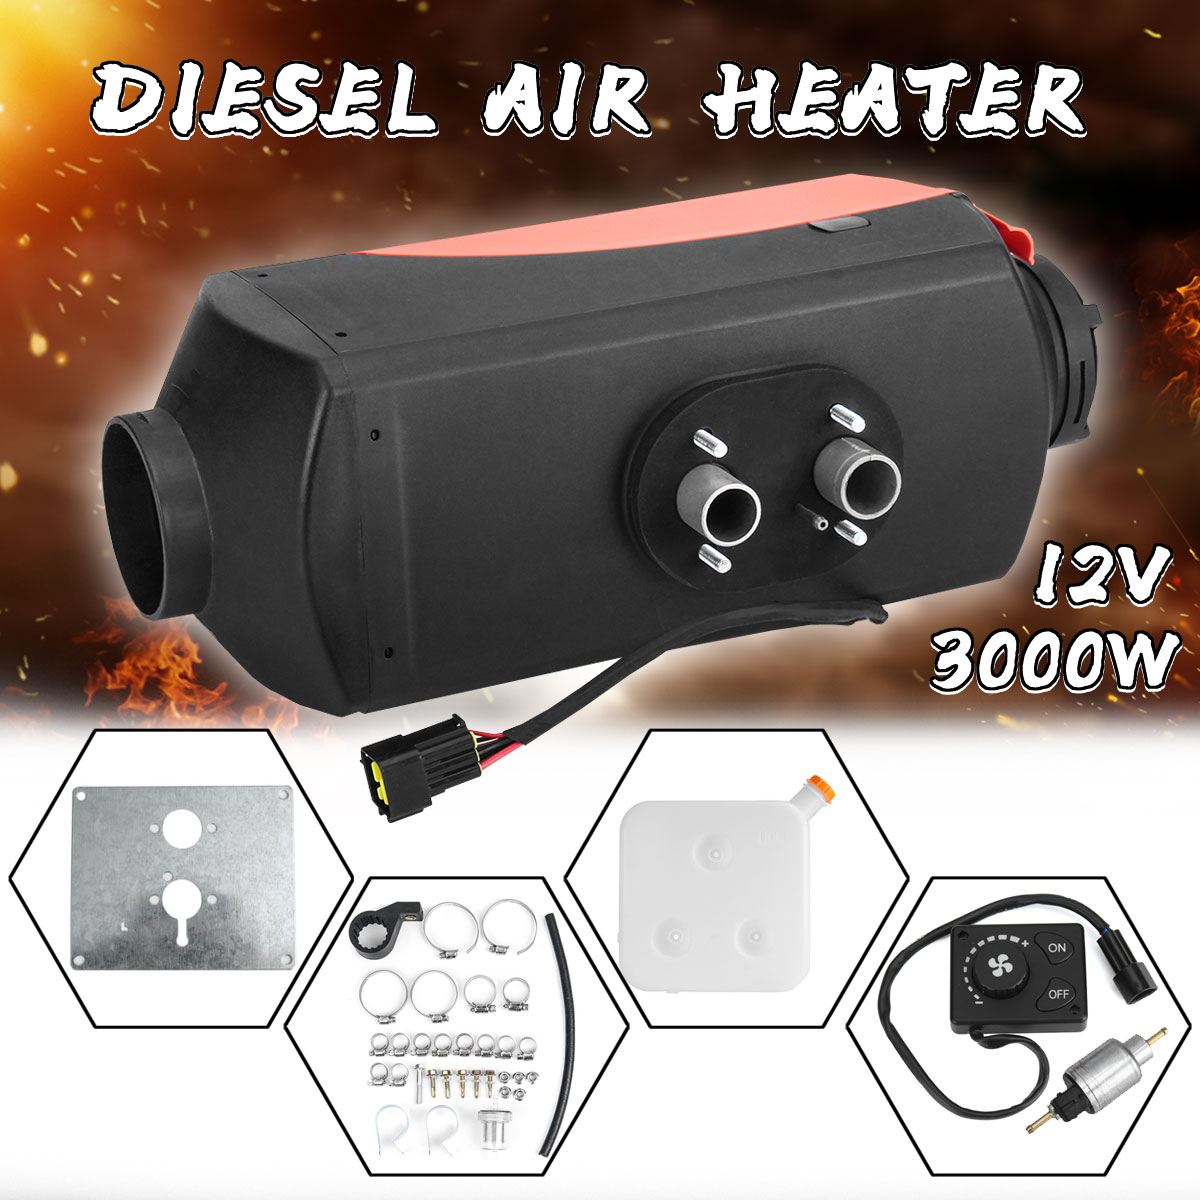 3000W 12V air parking heater diesel air heater in car Single Hole fit for almost all commercial vehicles alcohol use among drivers of commercial vehicles in calabar nigeria